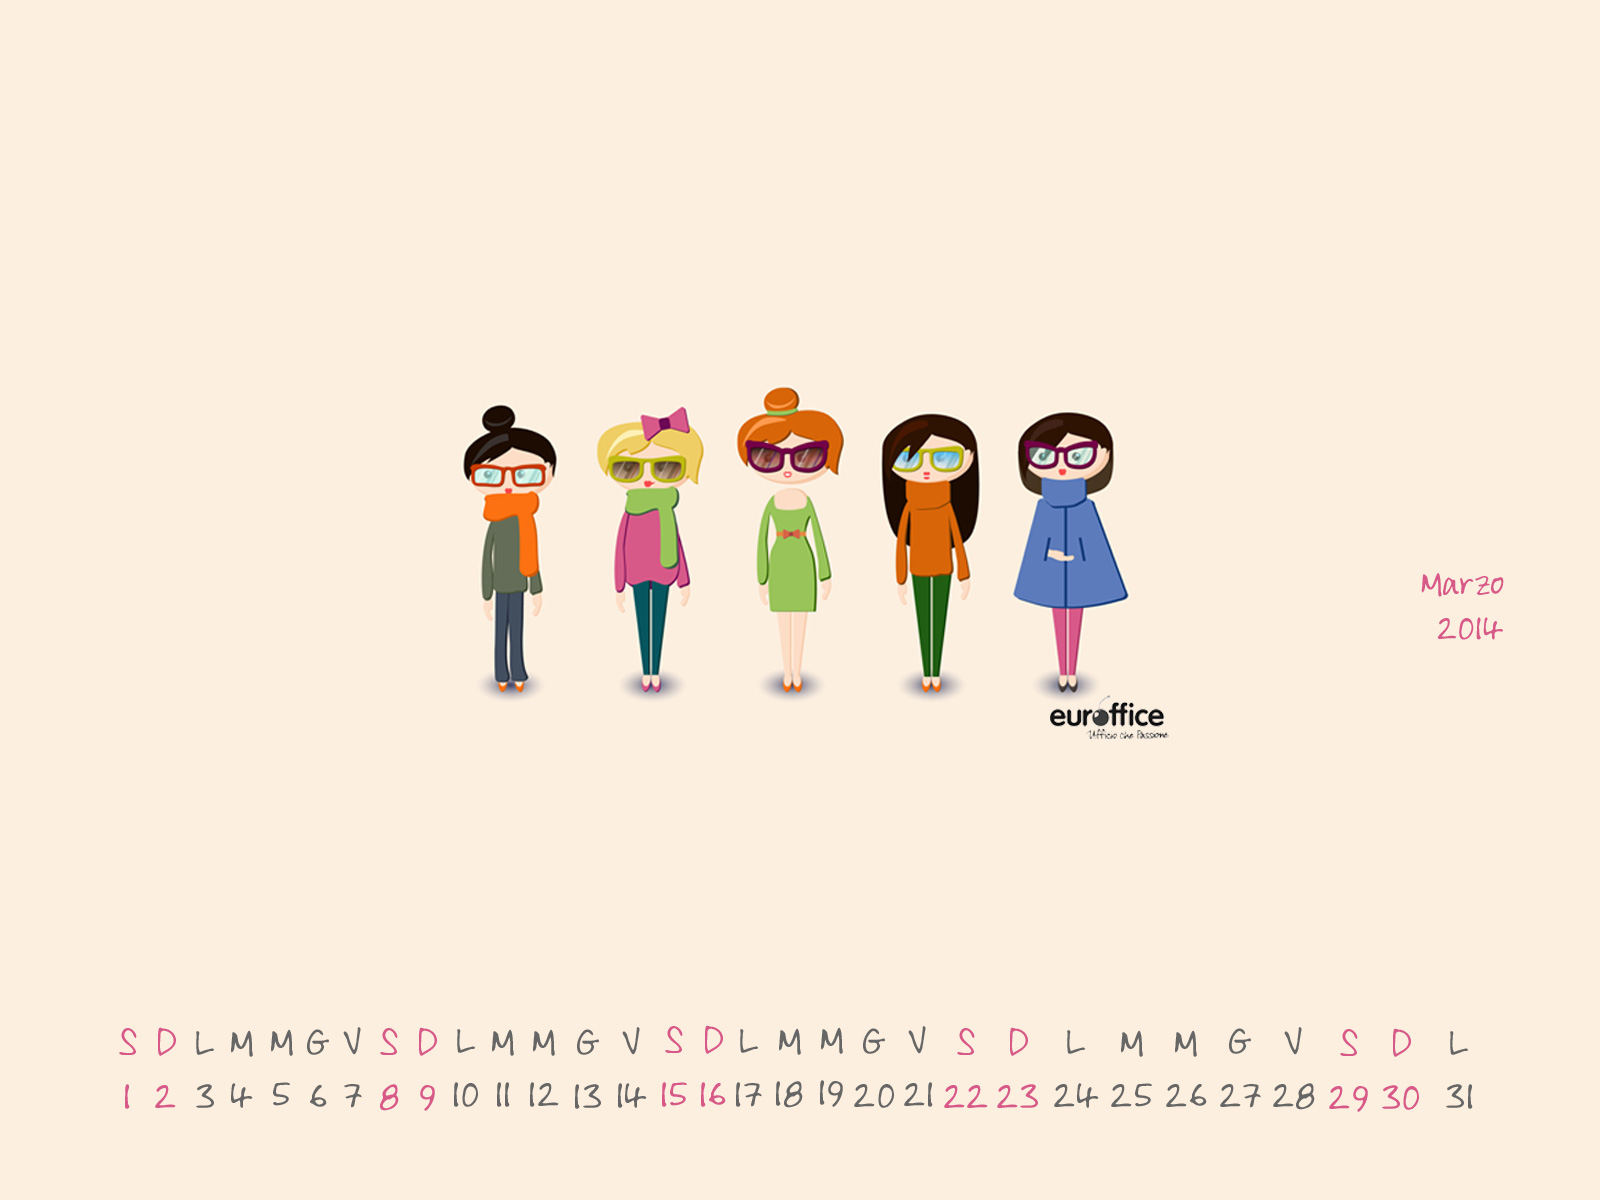 Wallpaper marzo 2014 - Womens' day